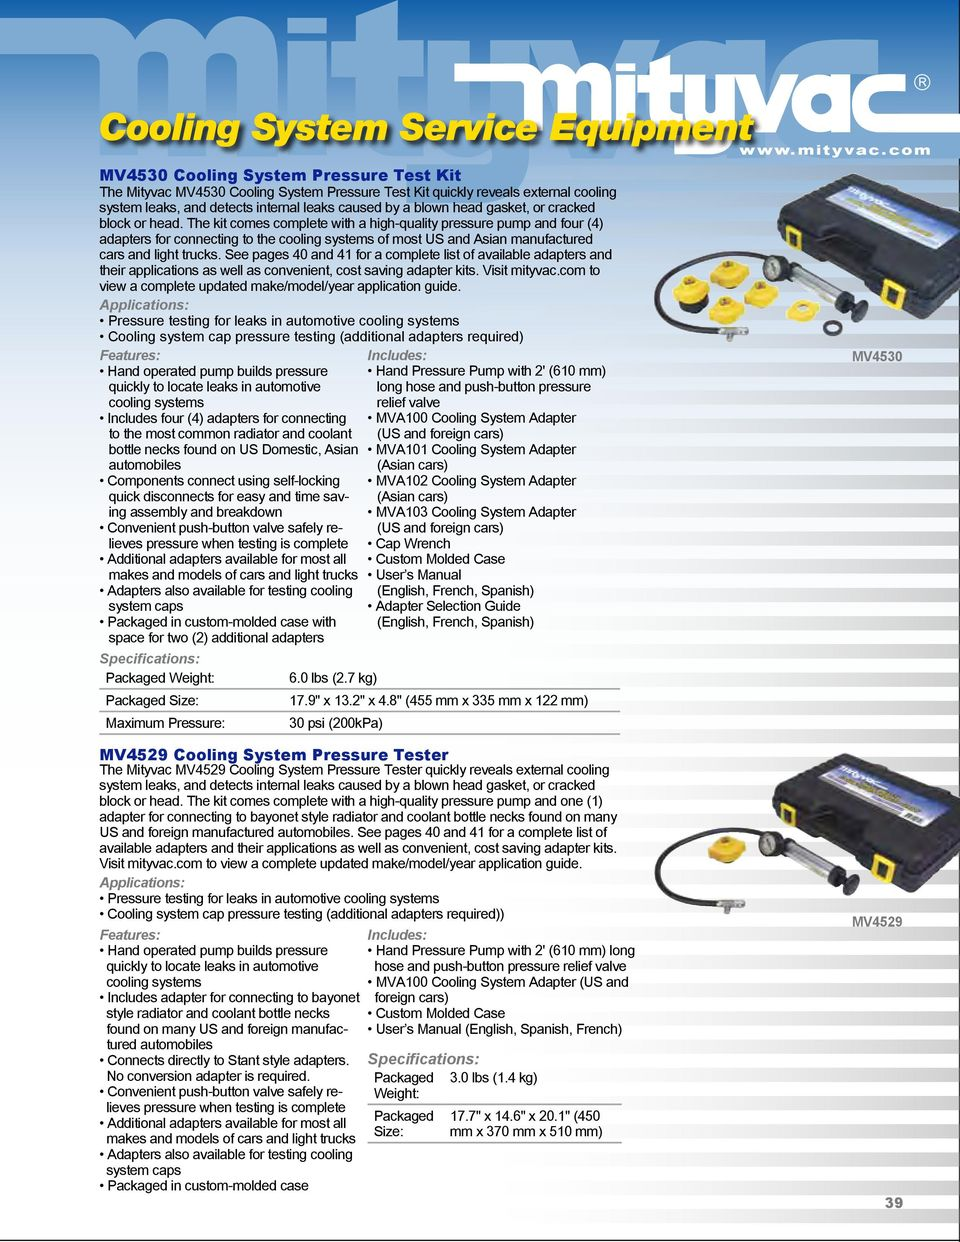 See pages 40 and 41 for a complete list of available adapters and their applications as well as convenient, cost saving adapter kits. Visit mityvac.